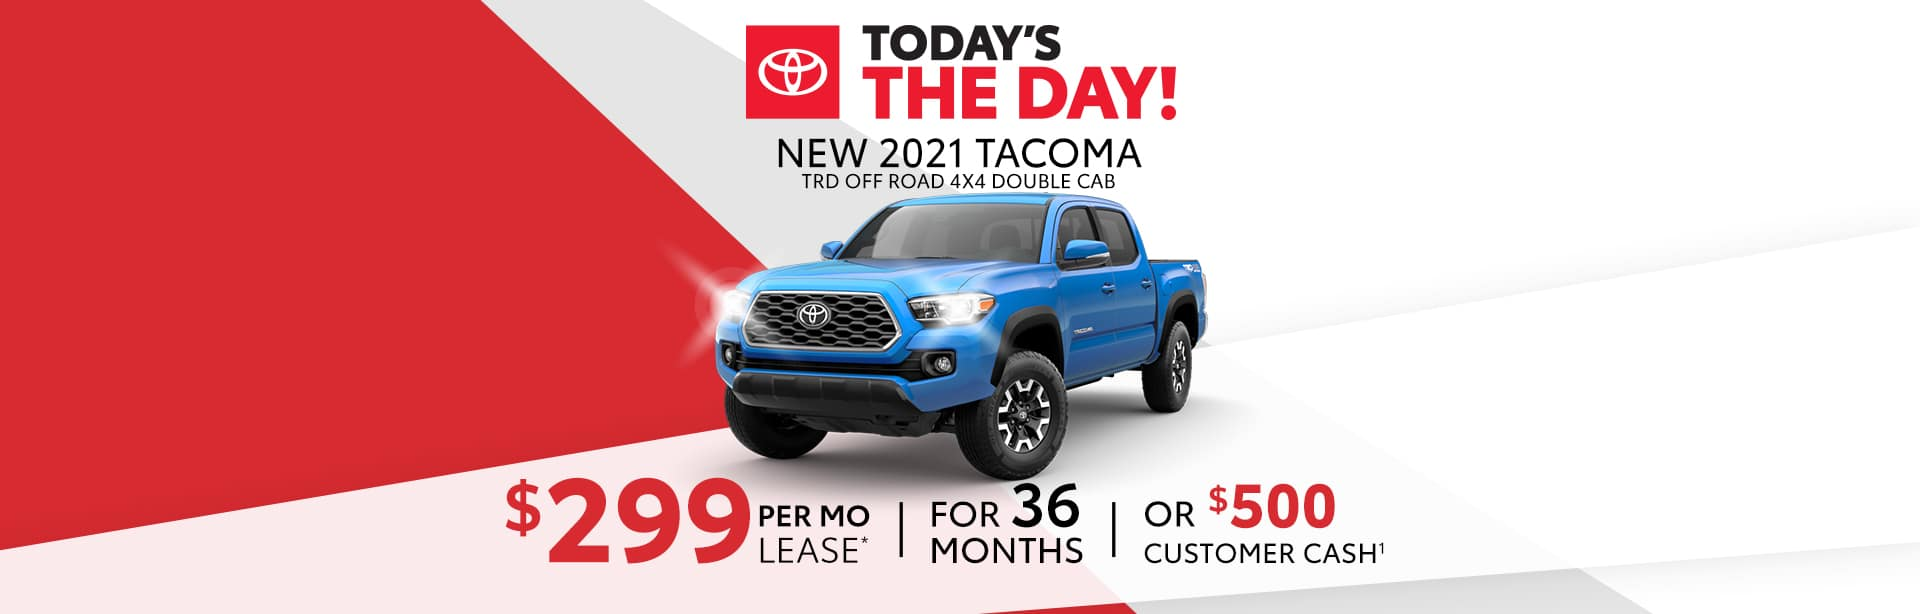 Lease a New Tacoma for $299 a month near Shelbyville, Indiana